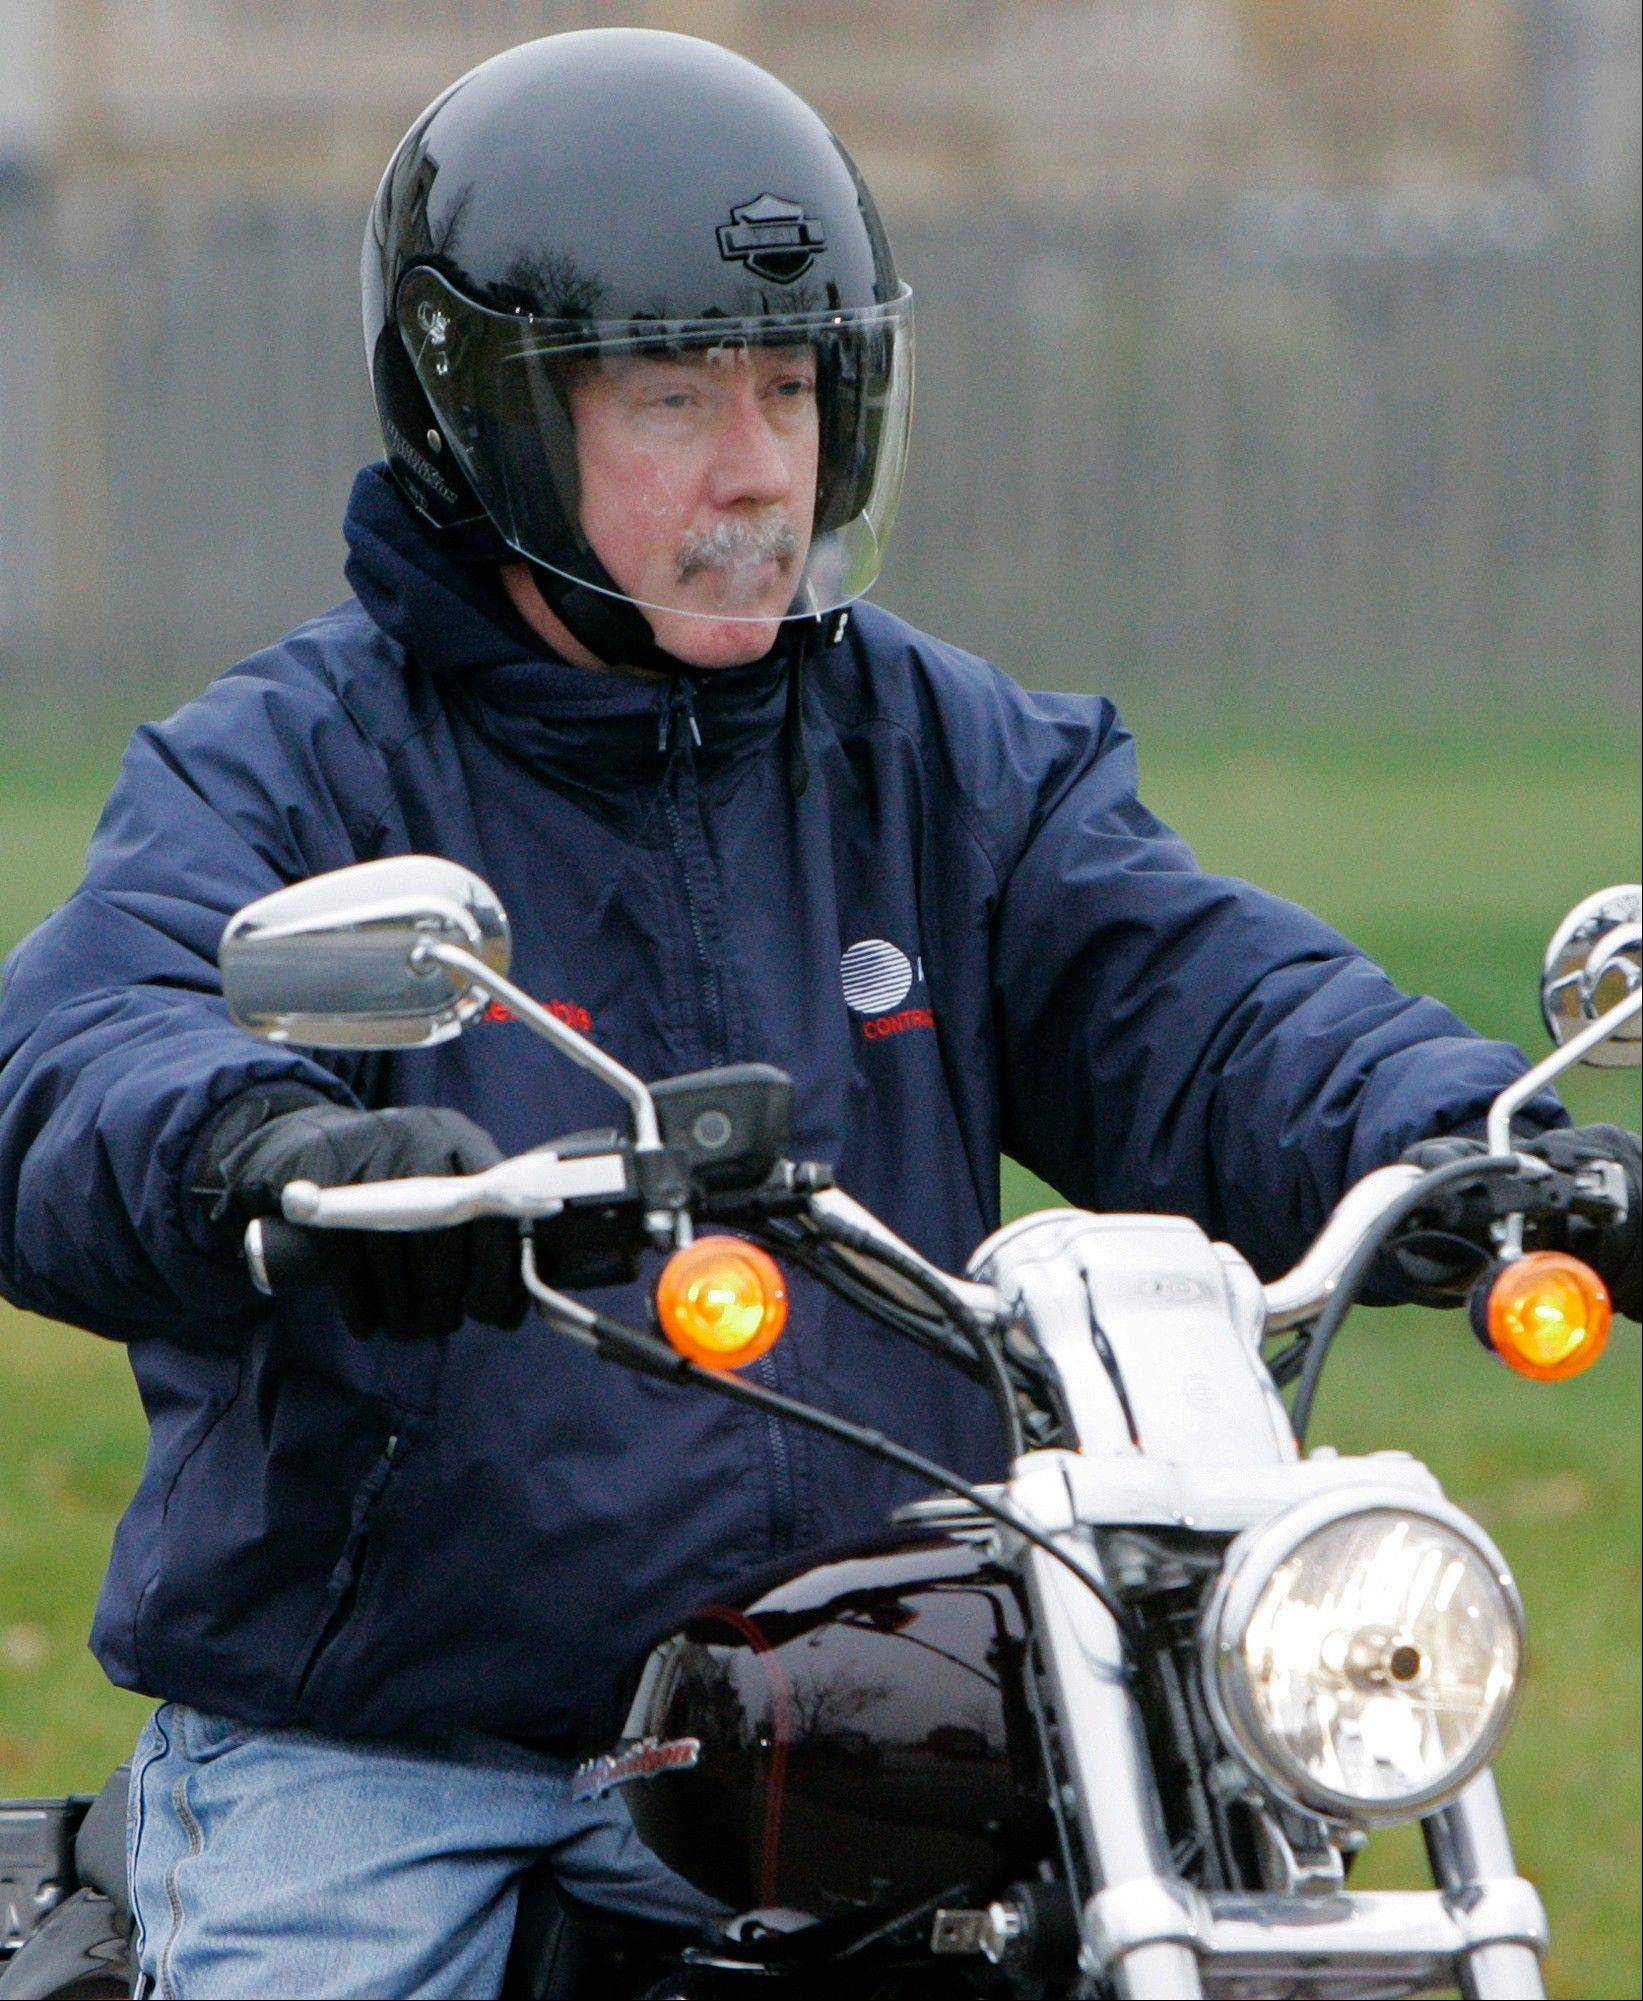 Former Bolingbrook police sergeant Drew Peterson leaves his Bolingbrook home on his motorcycle in 2007.